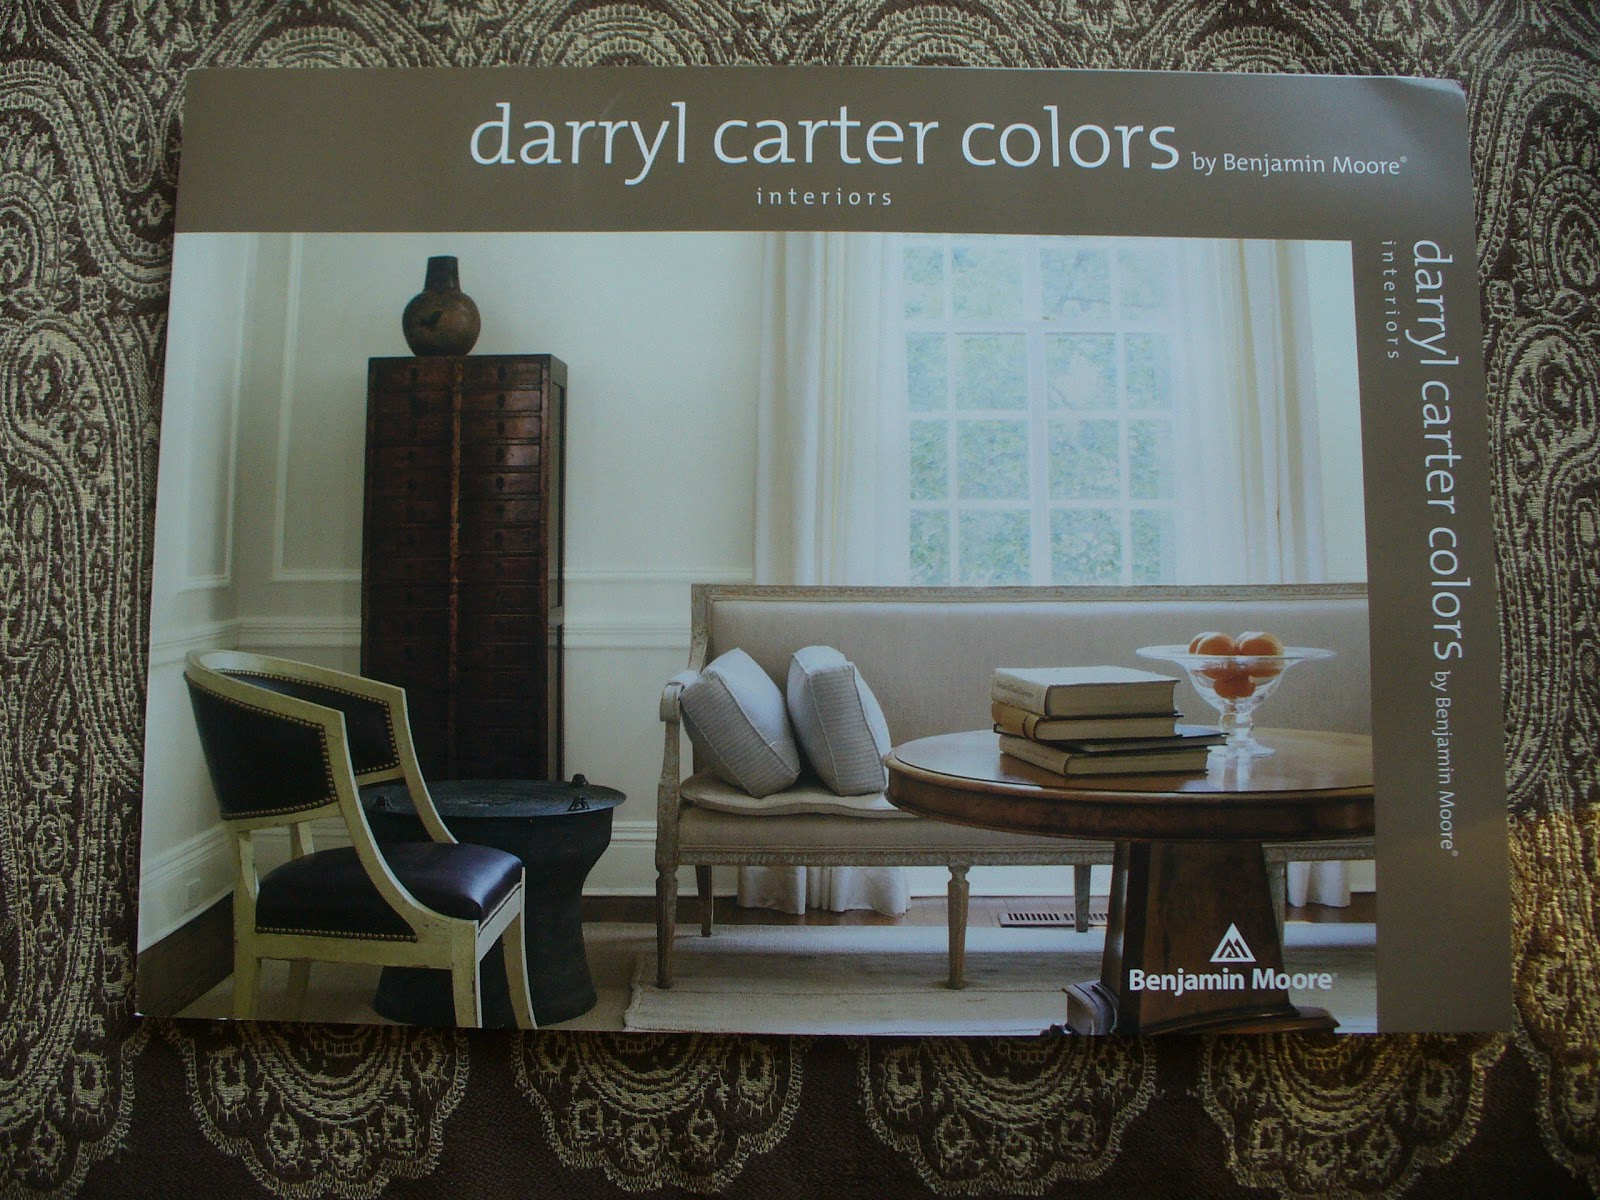 My notting hill cracking the darryl carter bm paint code for Darryl carter store